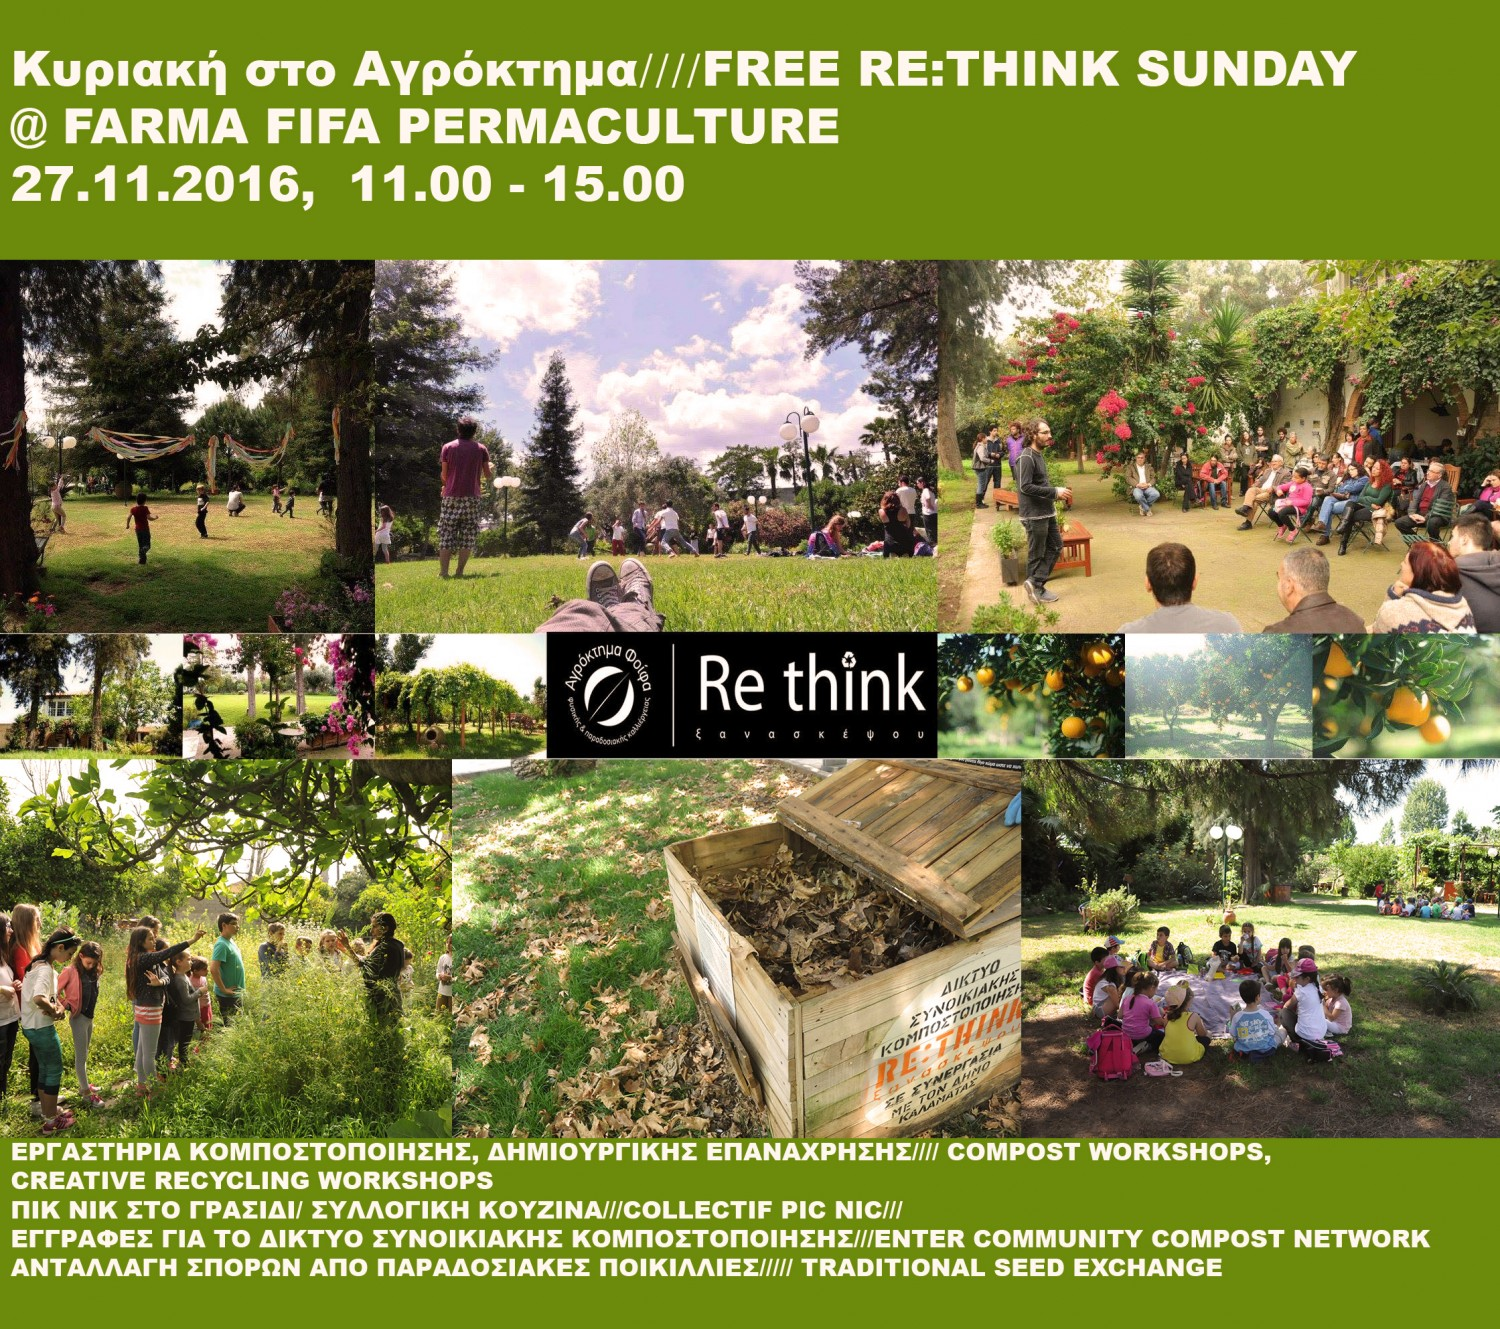 rethink-sunday